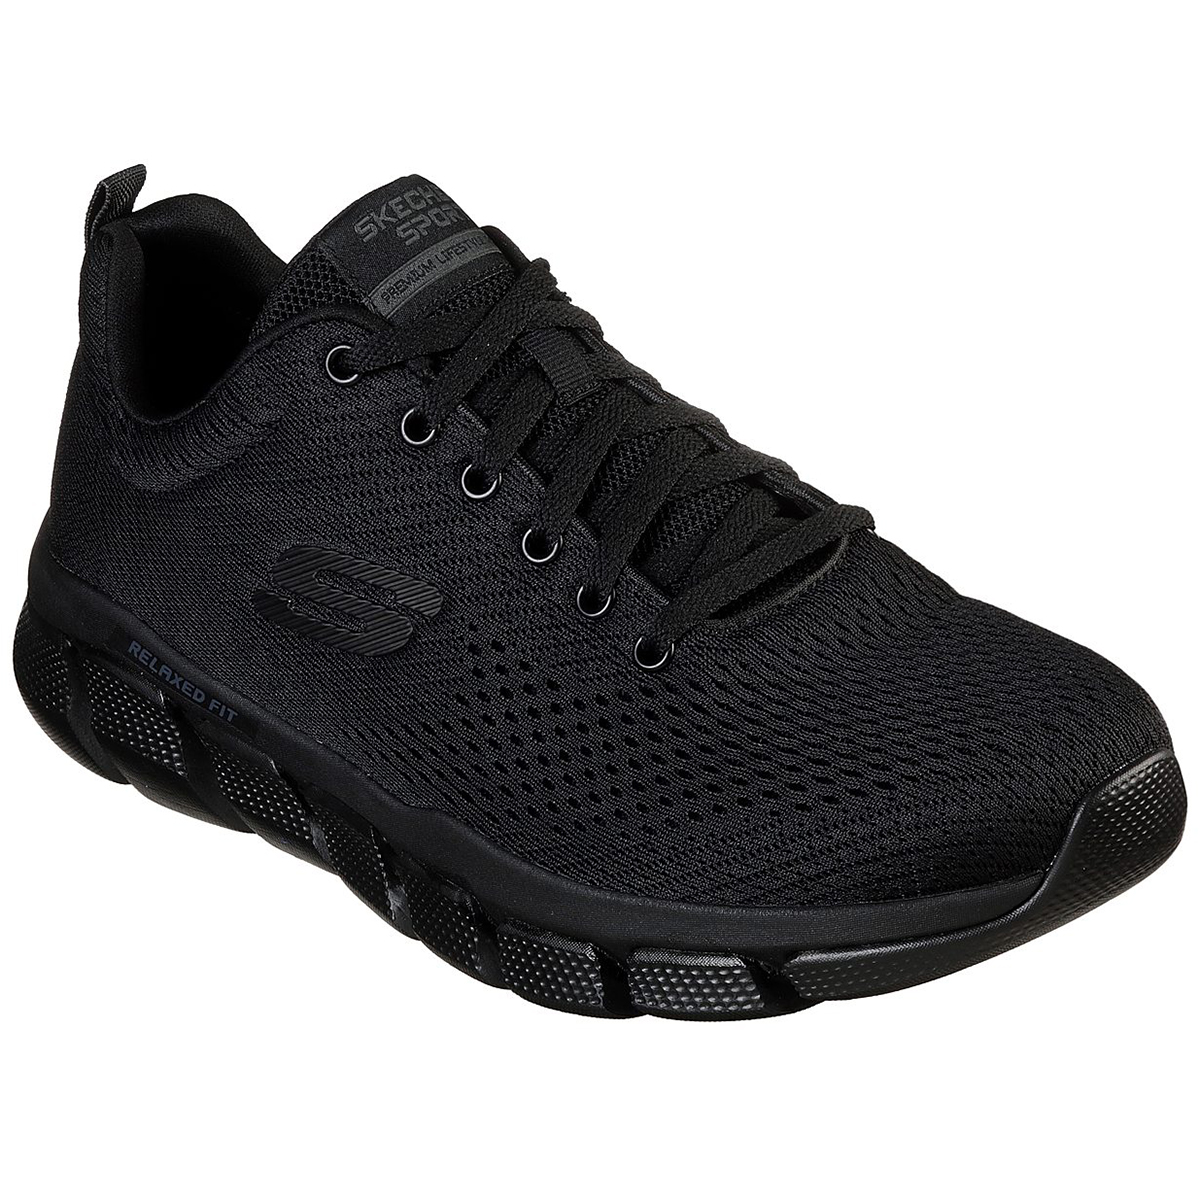 Skechers Men's Relaxed Fit Skech-Flex 3.0 Verko Lace Up Sneakers, Wide - Black, 9.5